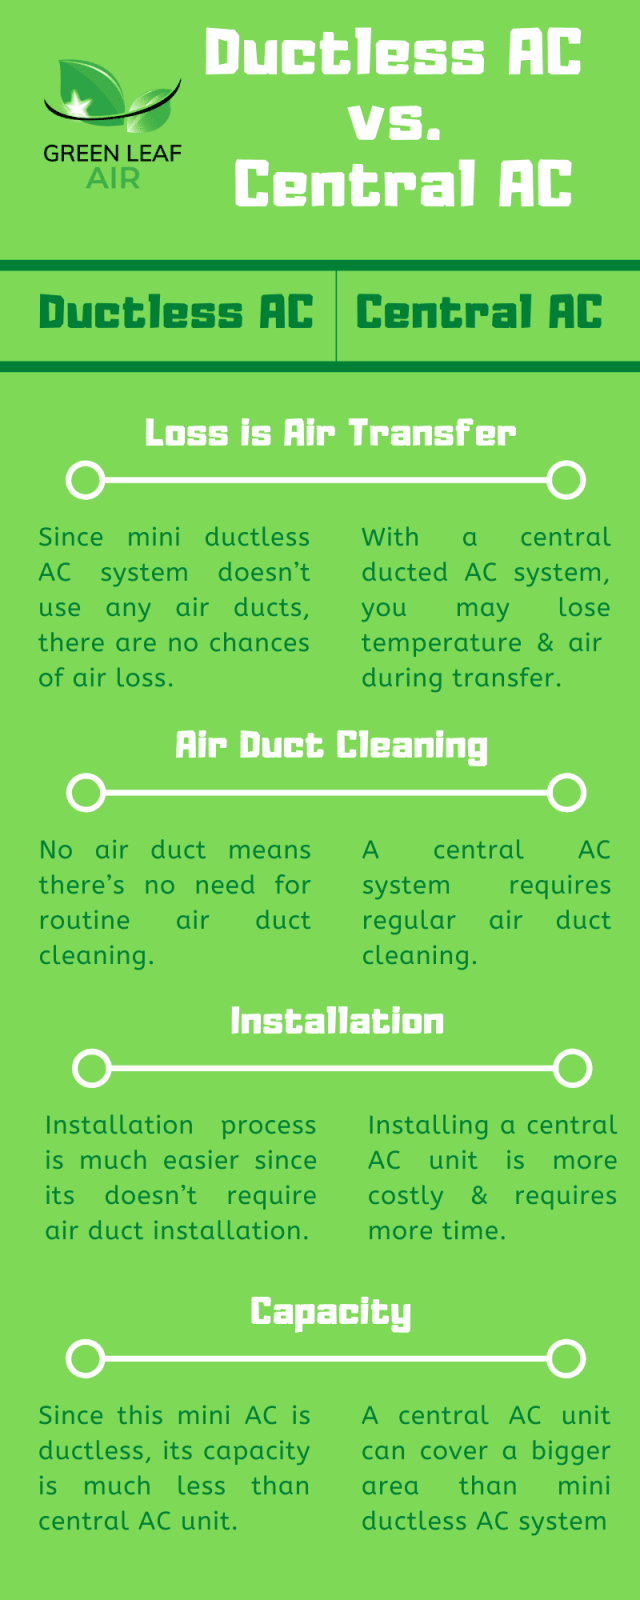 Ductless Air Conditioner vs. Central Air Conditioner